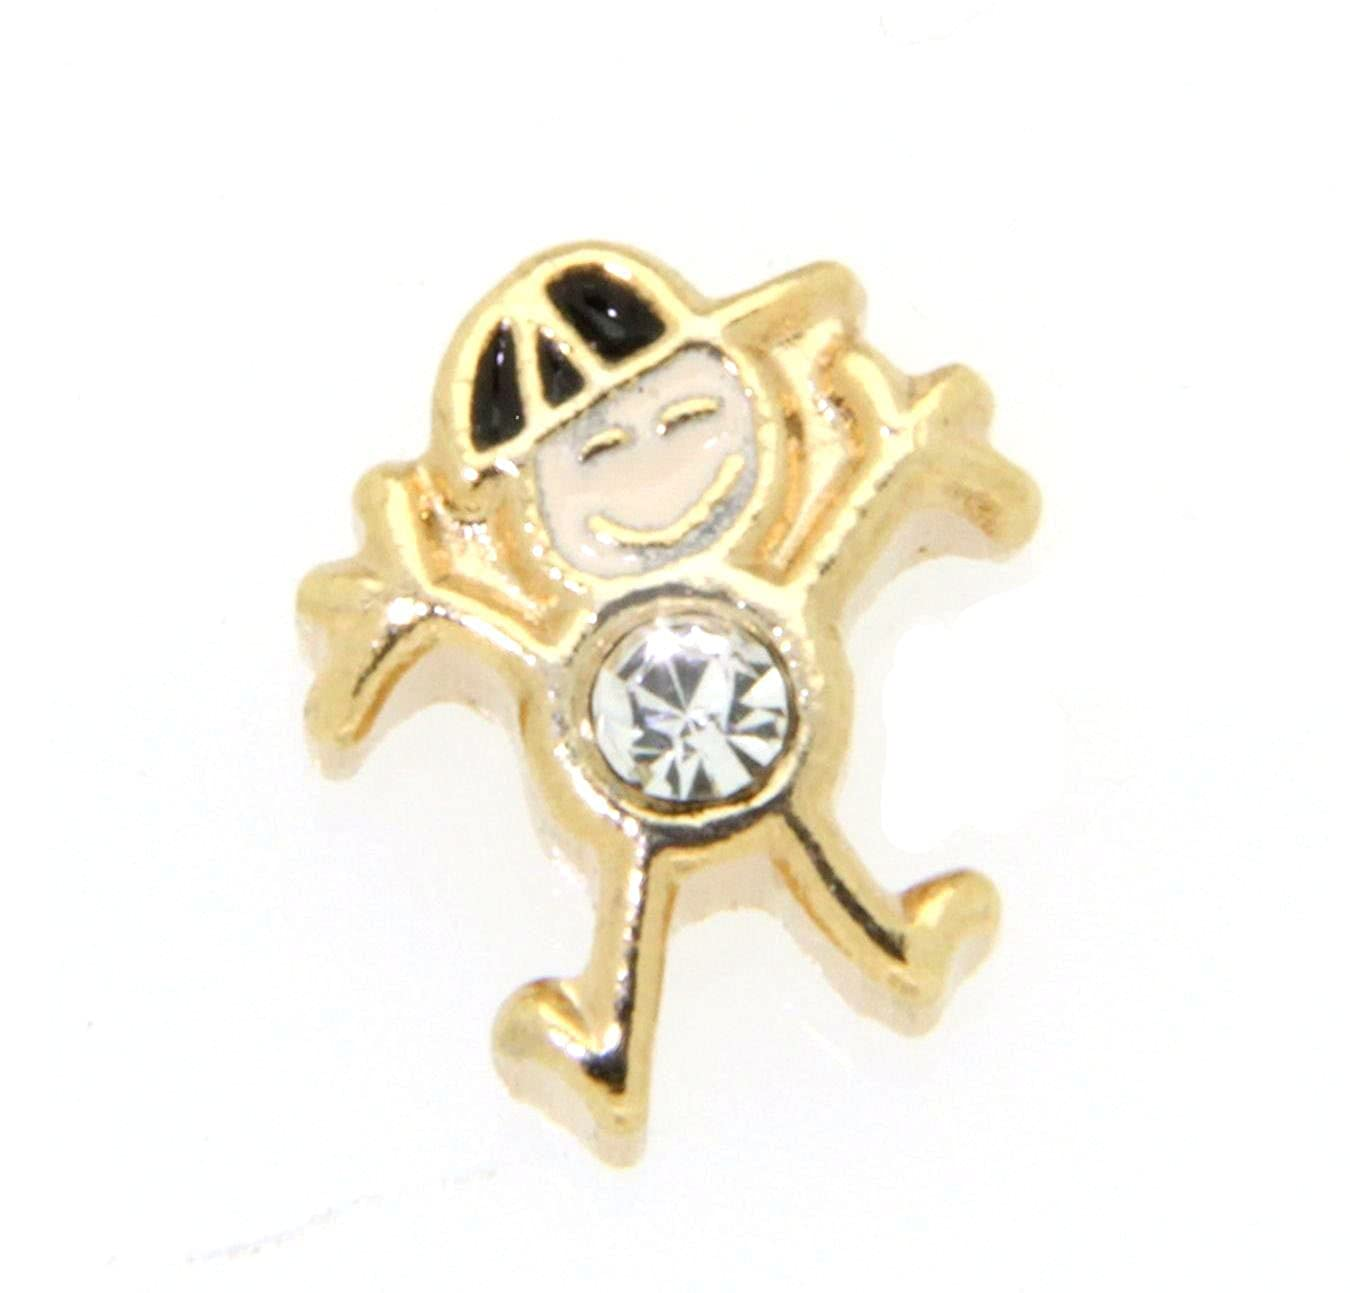 April Birth Month Boy Charm for Floating Lockets Clearly Charming 010-013-010-0148